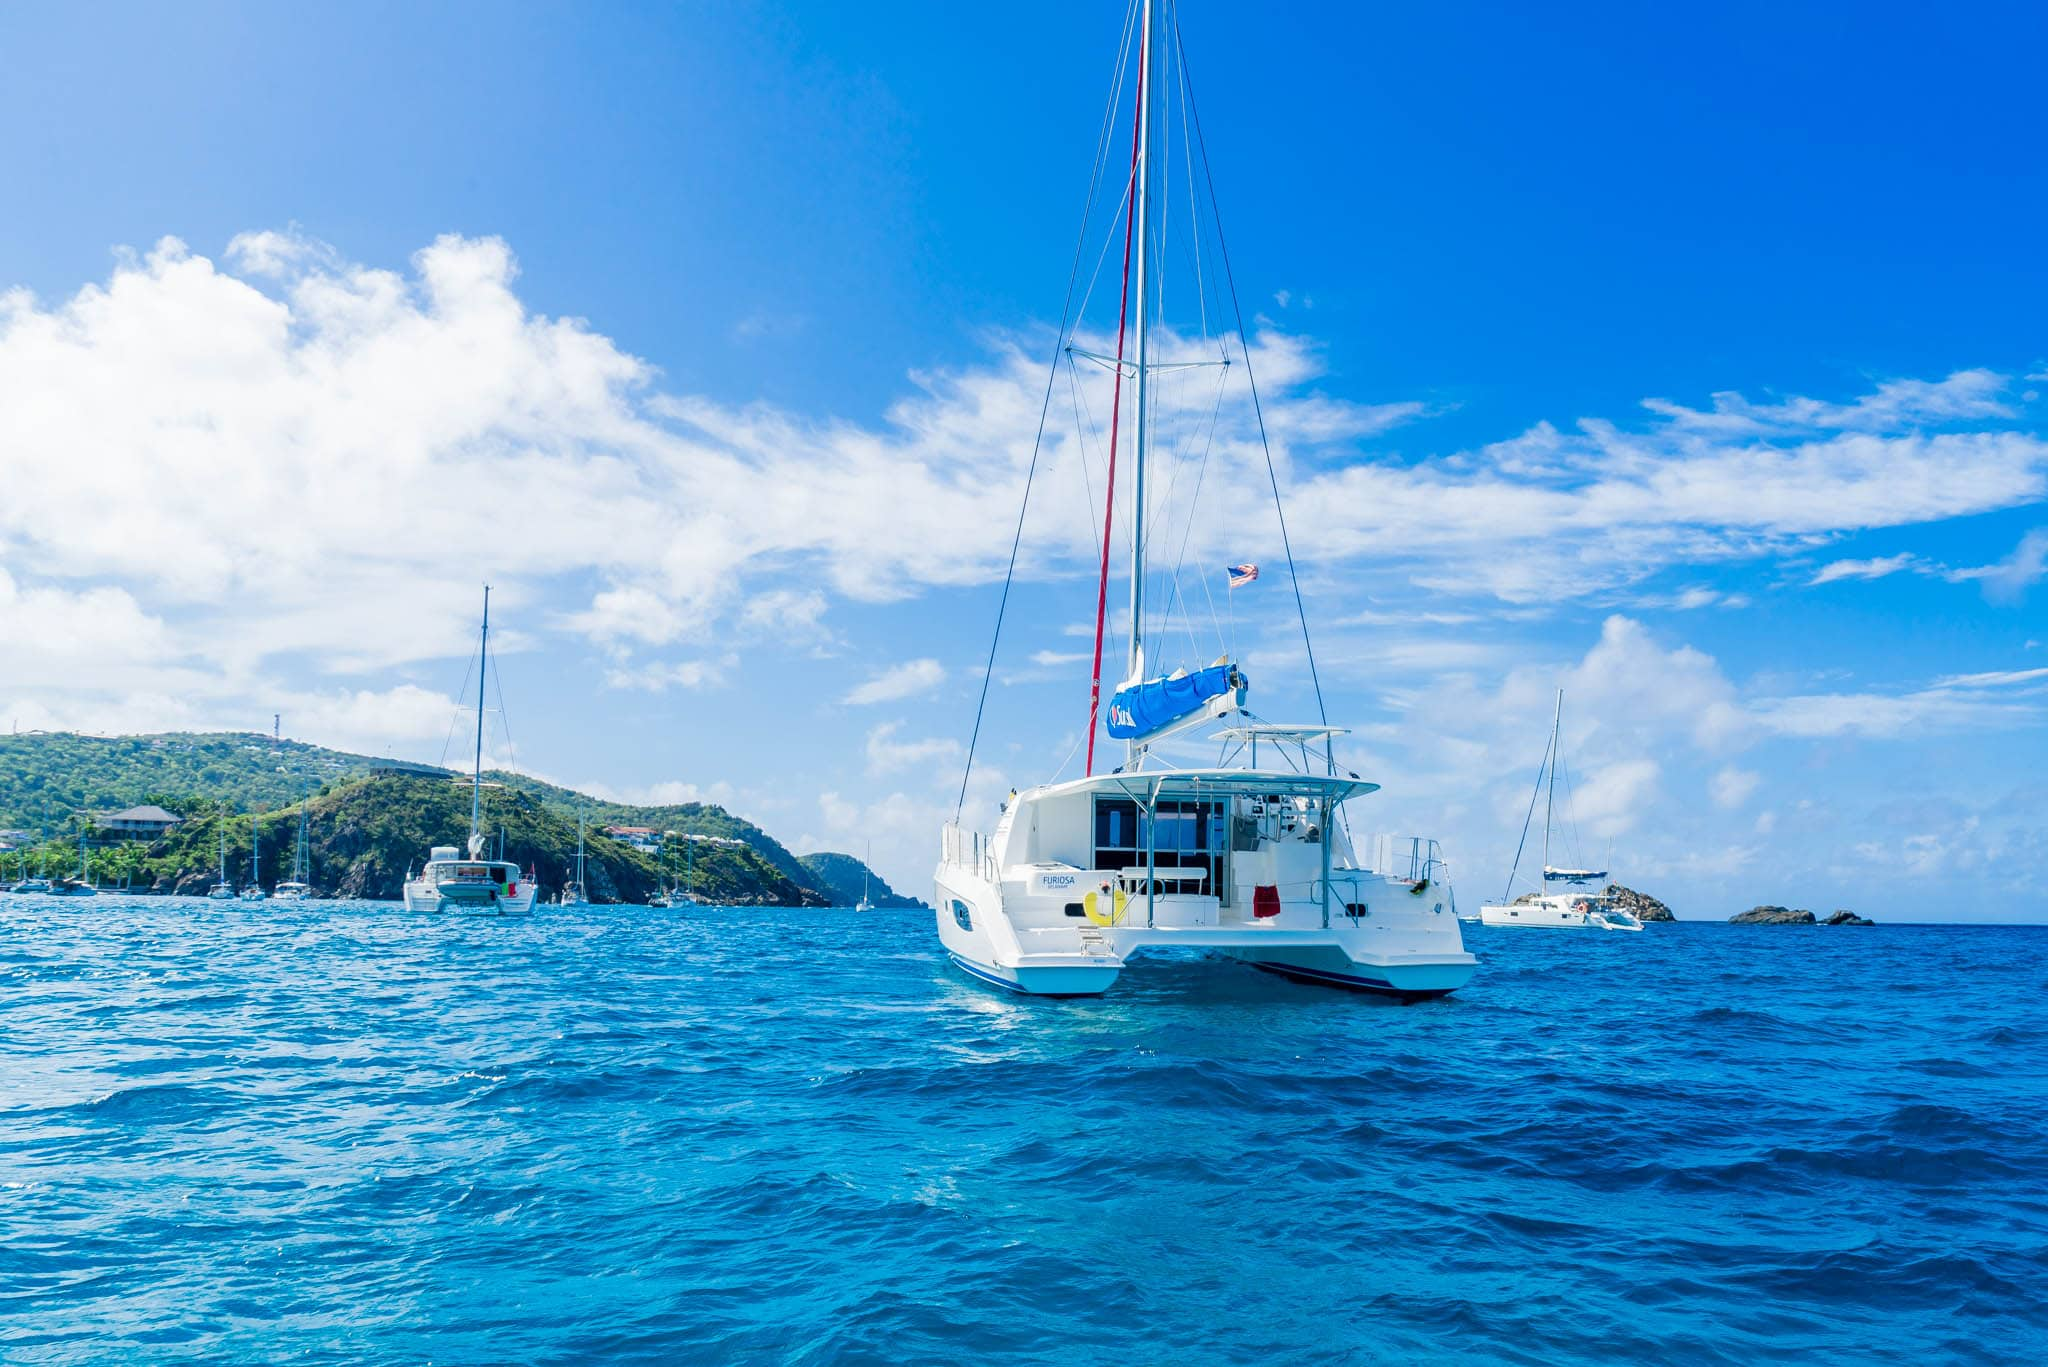 Anchored off St. Barths by Patrick Bennett